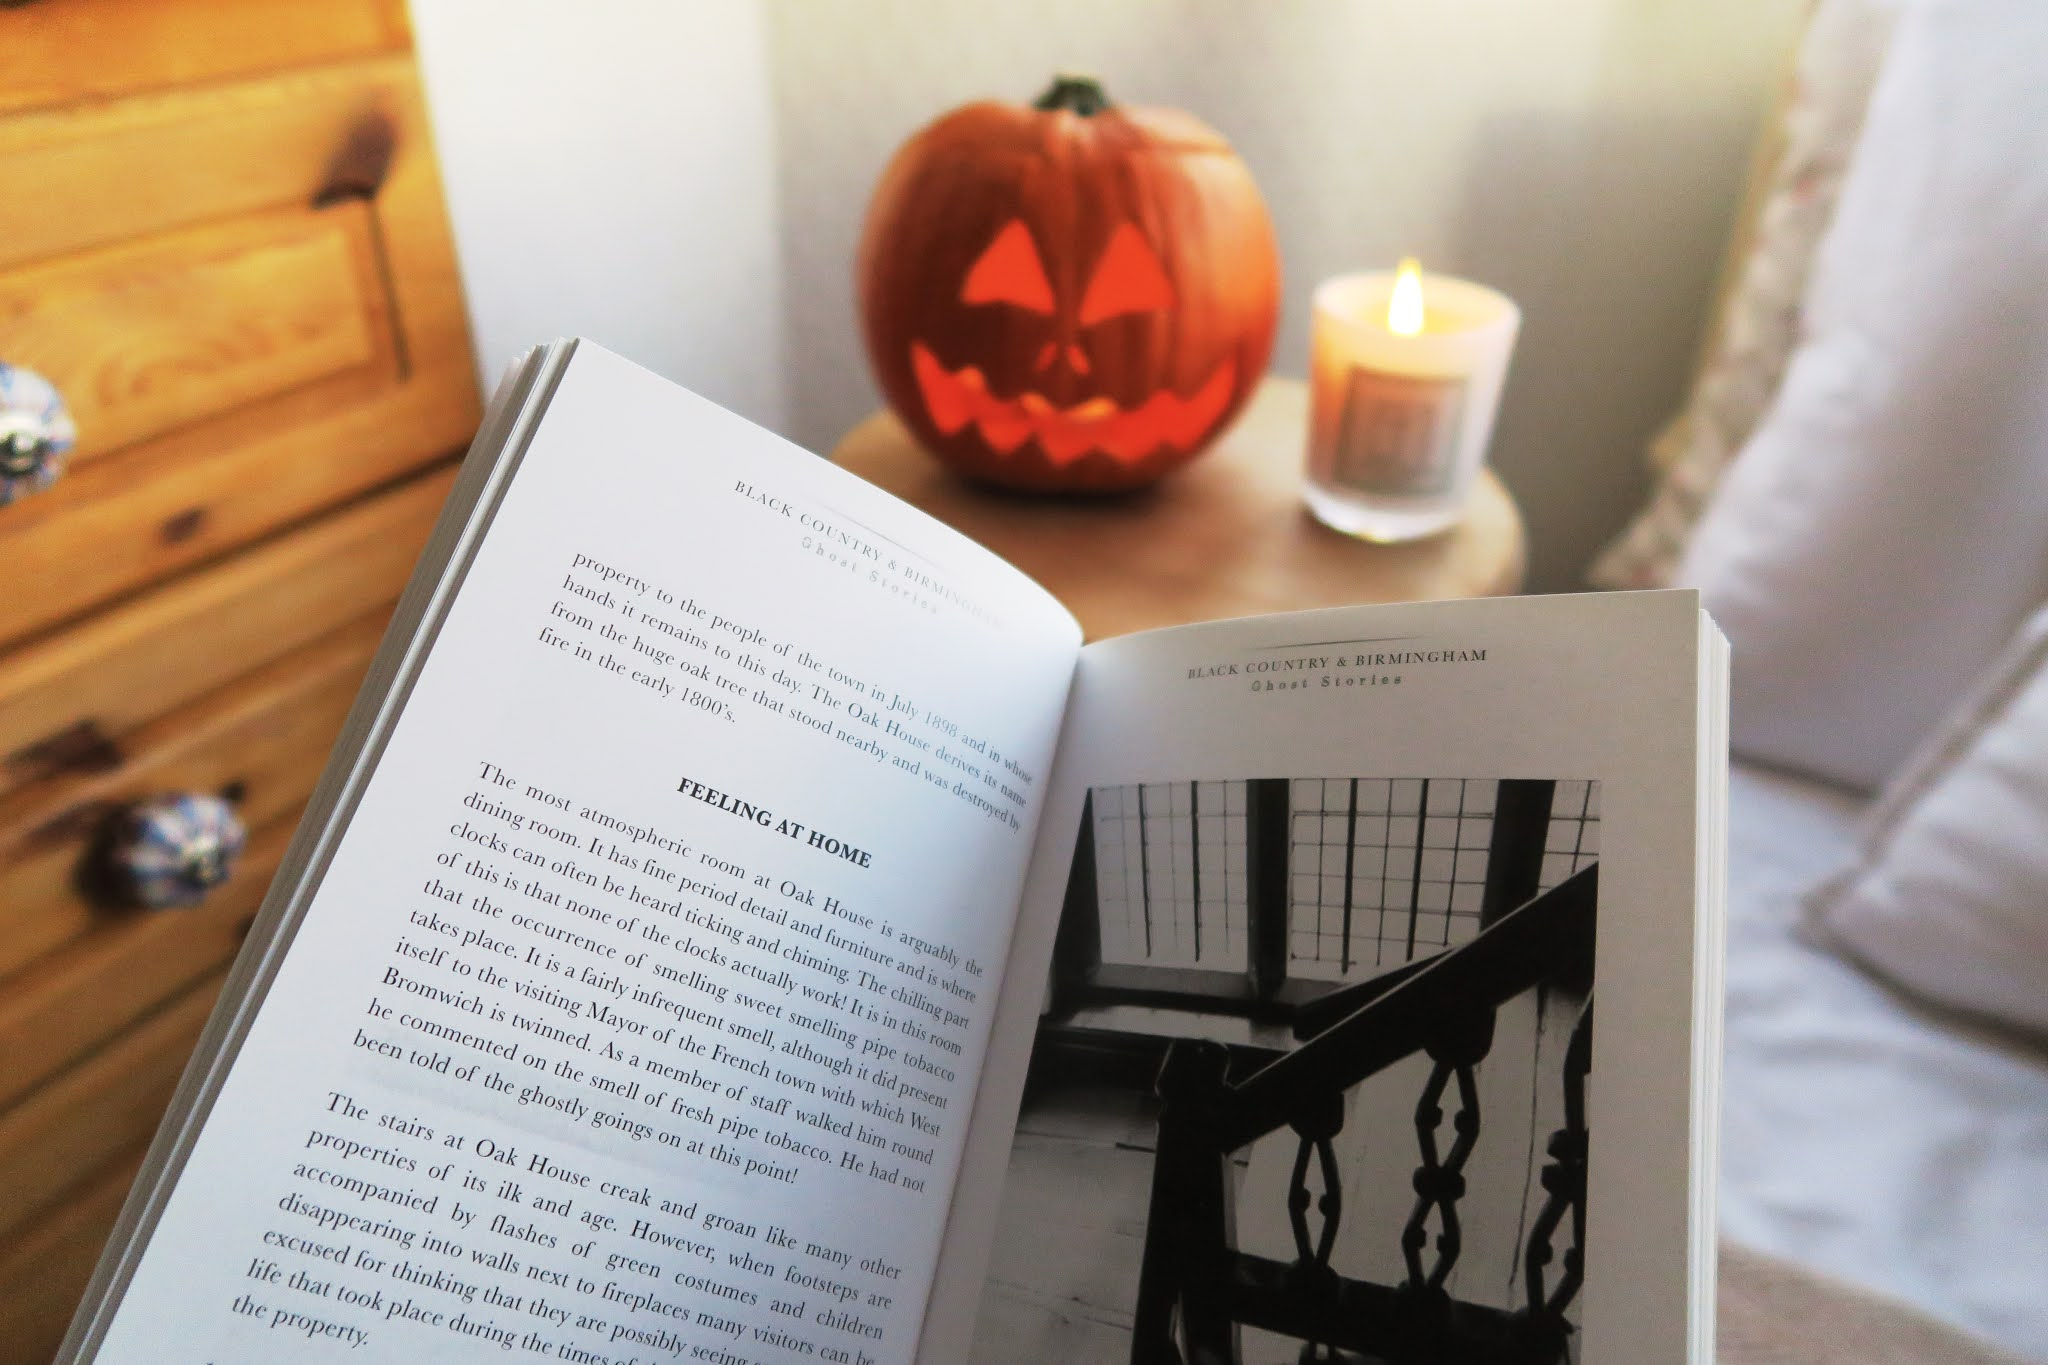 Grace is holding the ghost stories book open. In the background th pumpkin and a lit candle can be seen.